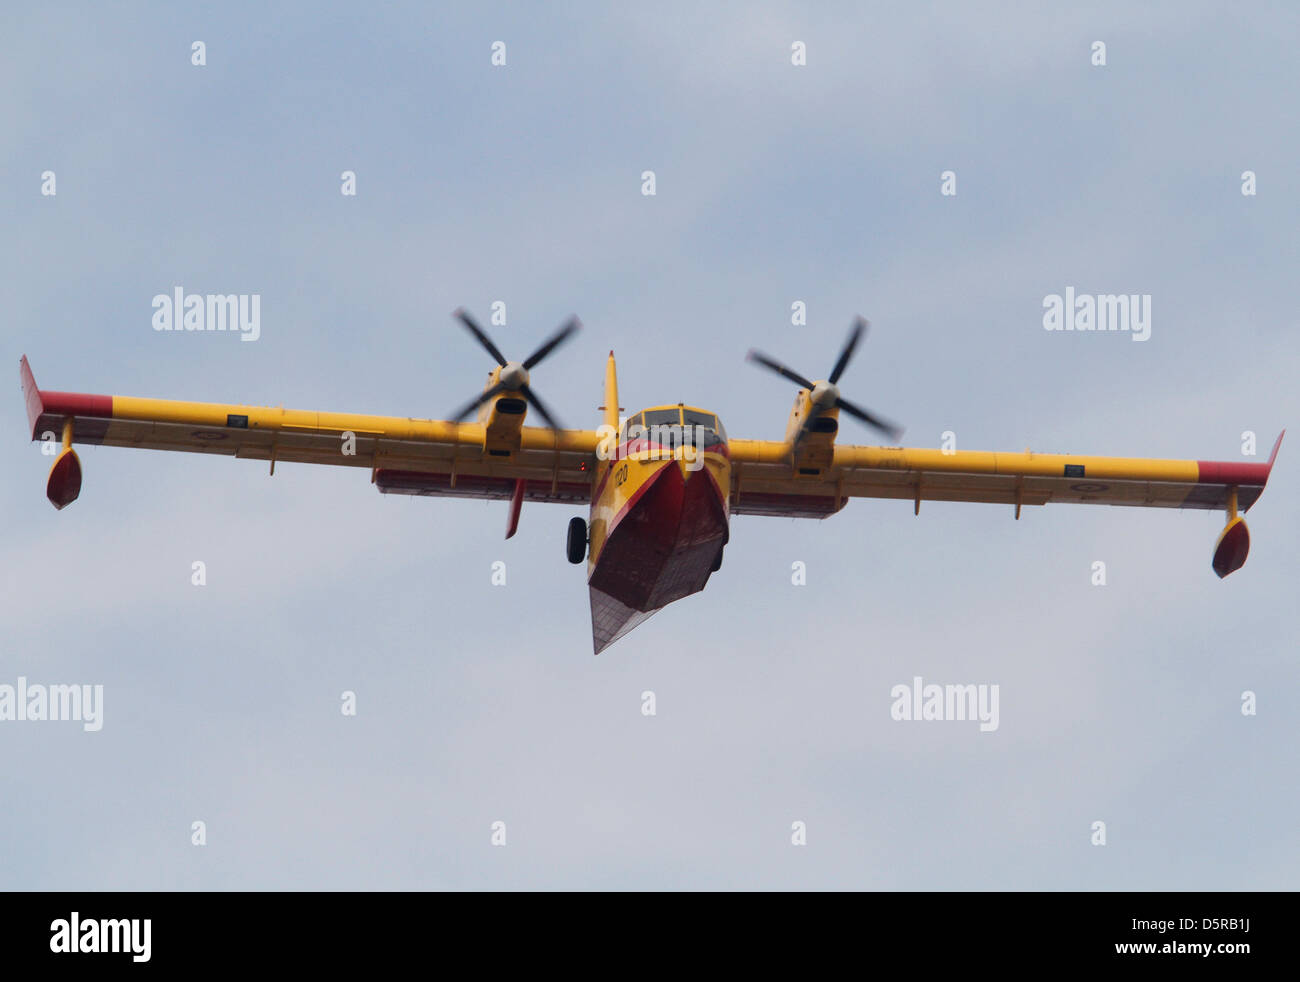 A Canadair fire extinguisher plane is seen during flight - Stock Image